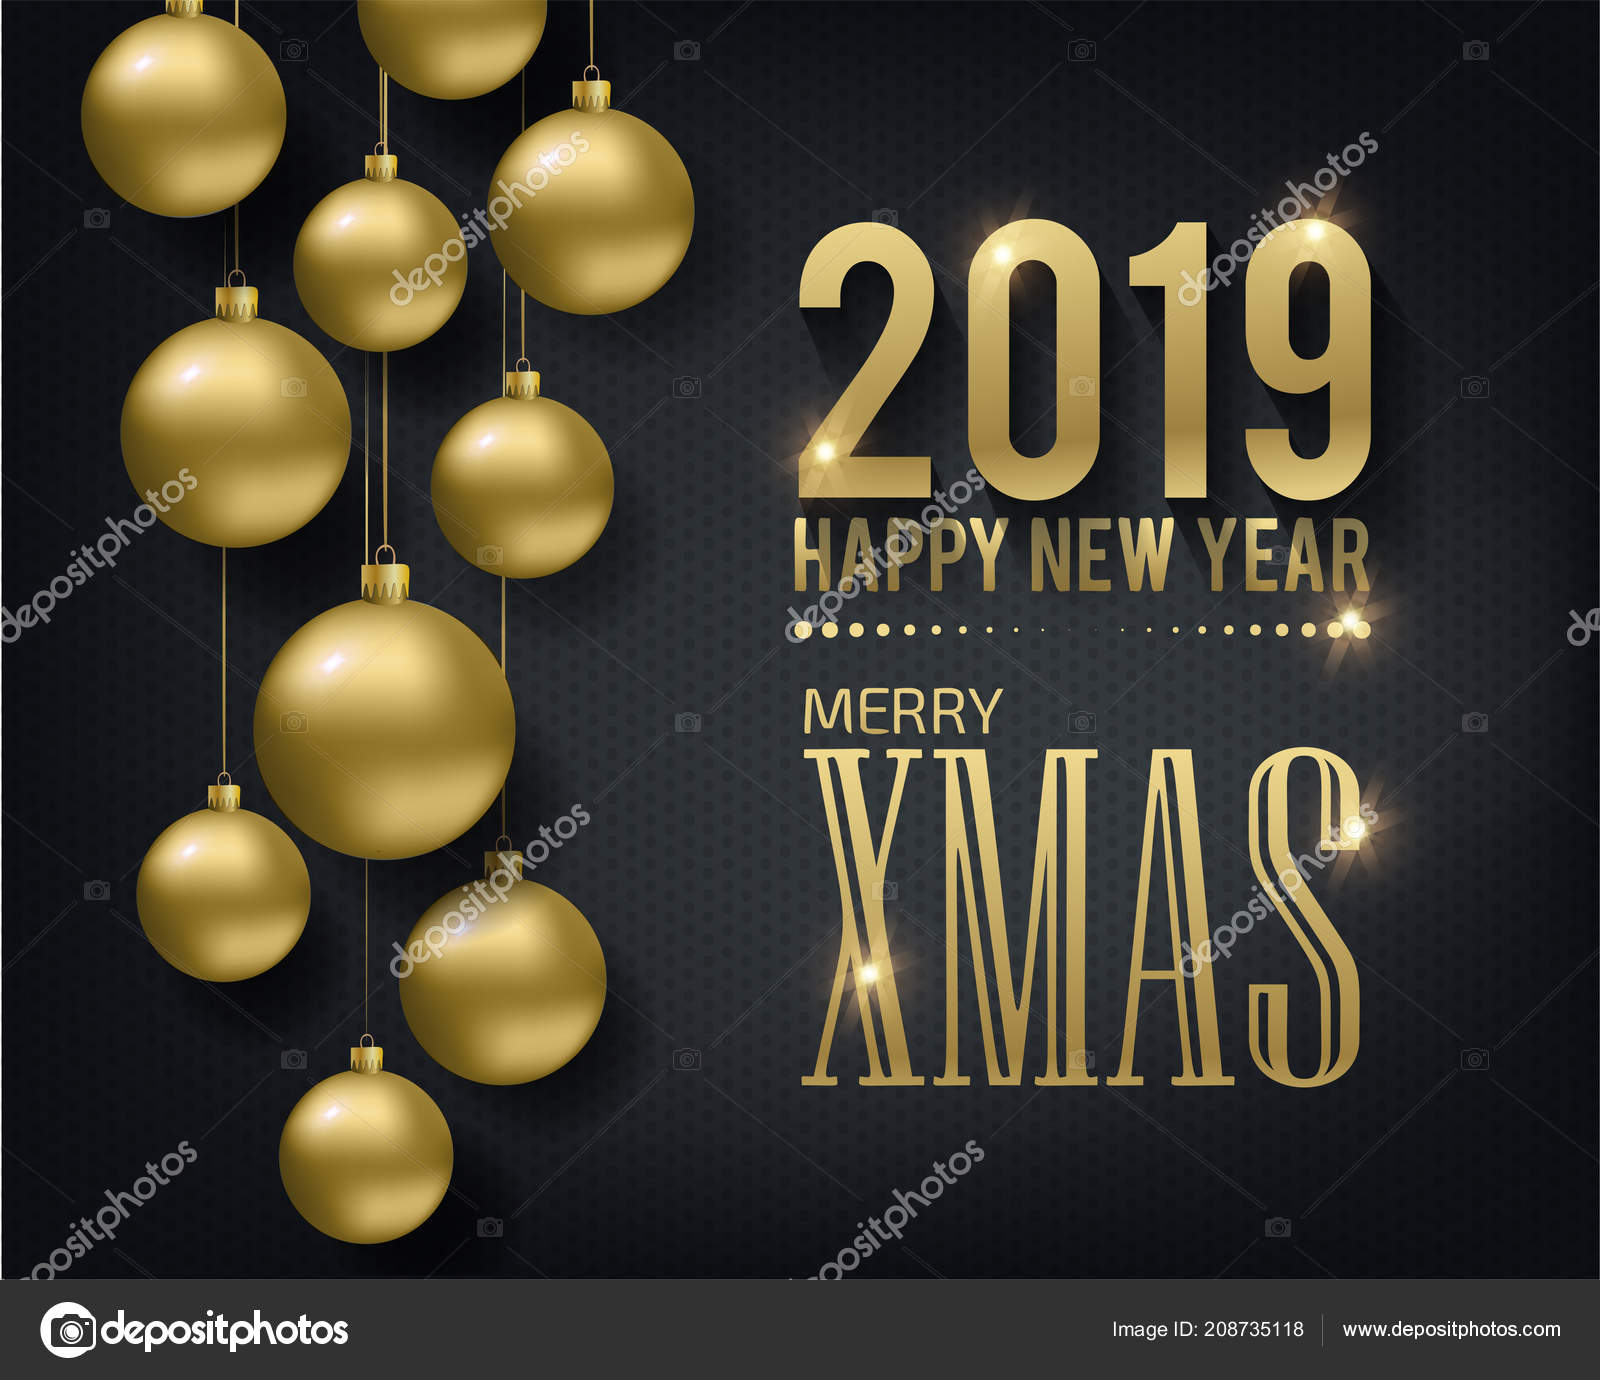 greeting card invitation with happy new year 2019 and christmas metallic gold christmas balls decoration shimmering shiny confetti on a black